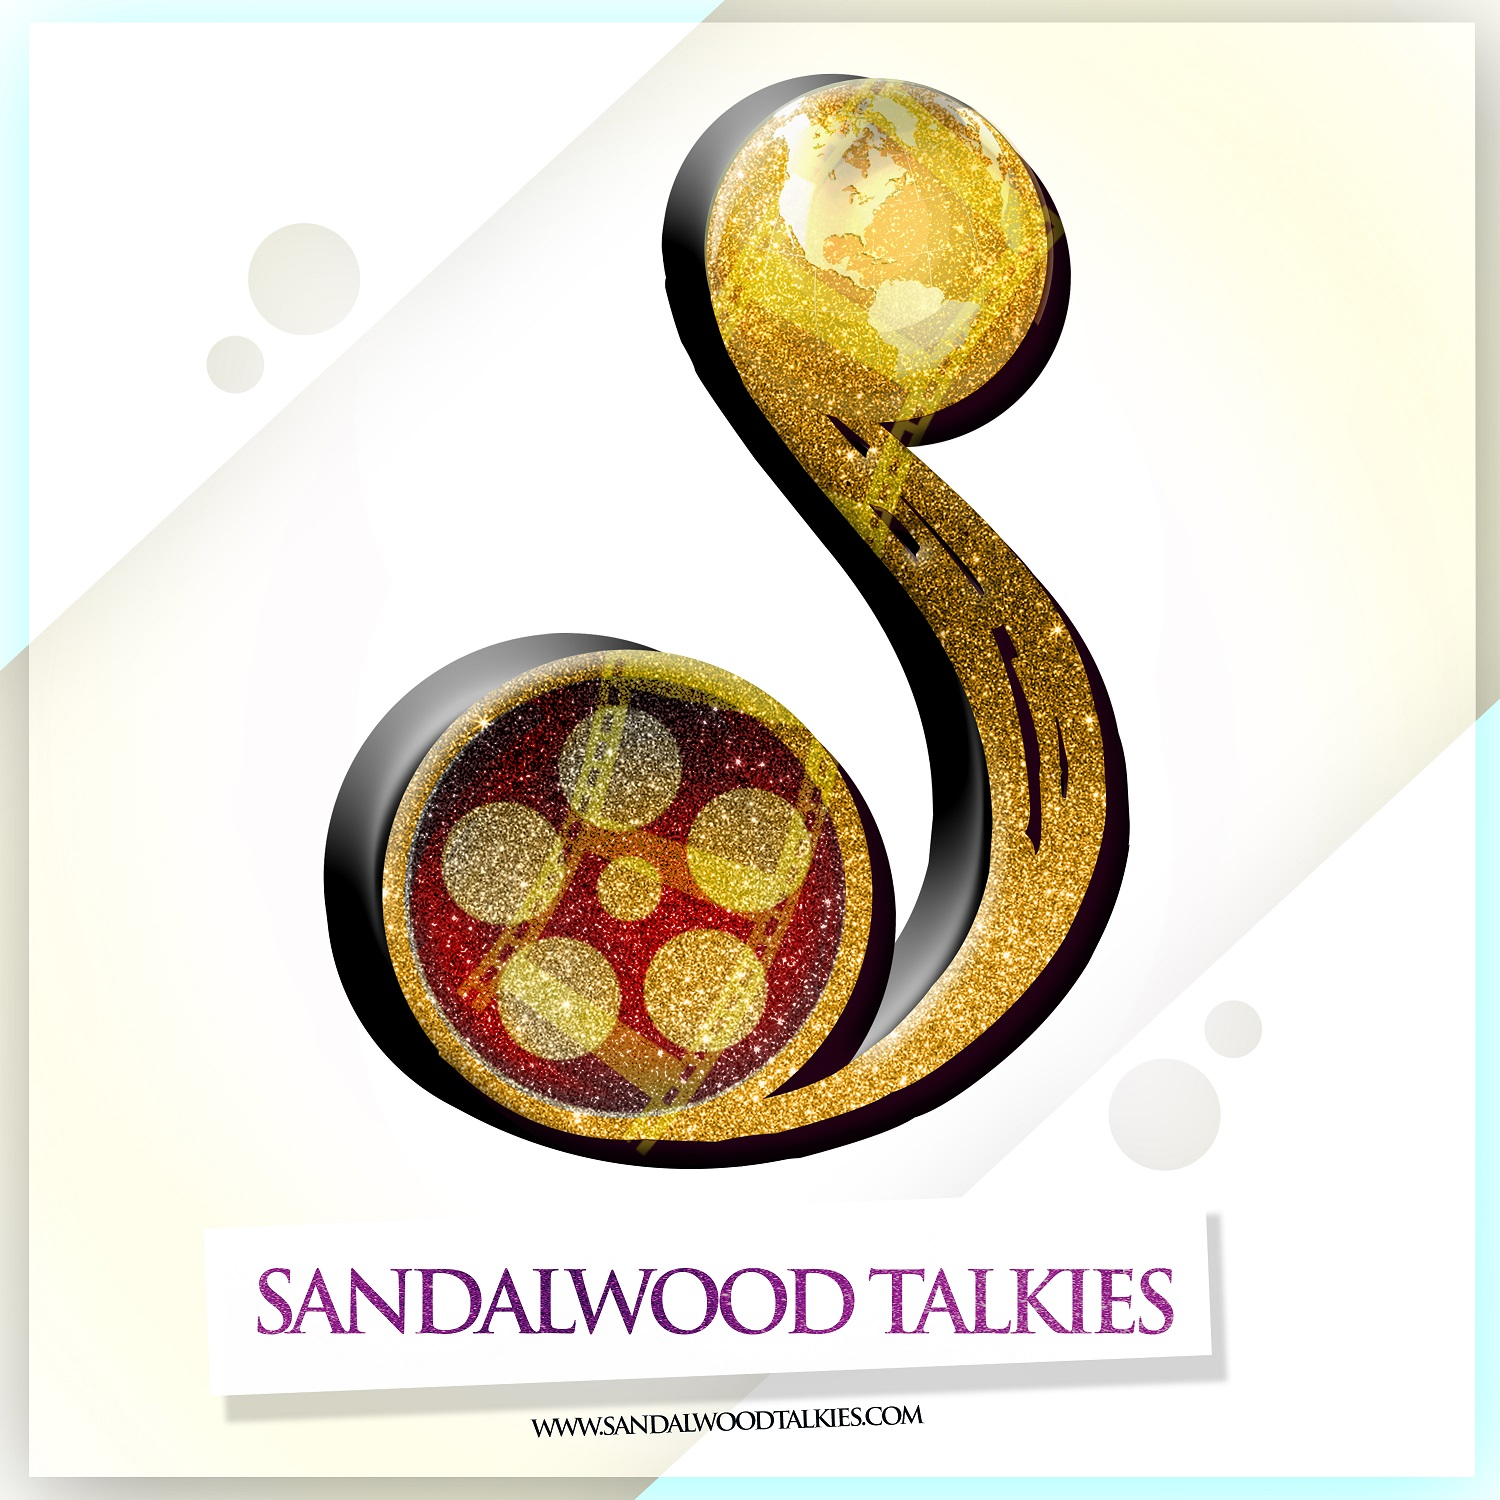 Sandalwood Talkies